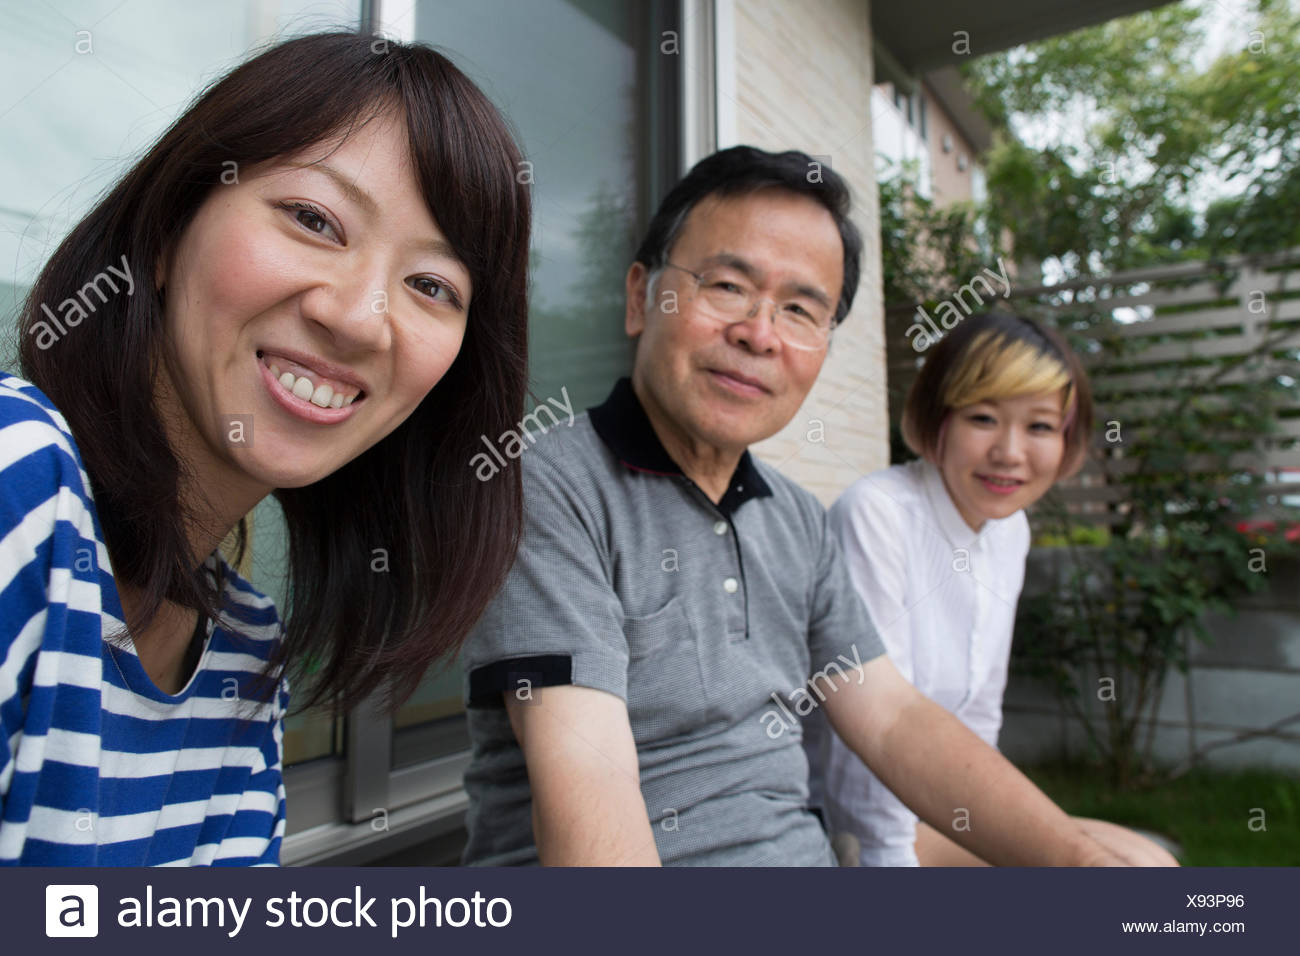 A man and two women sitting at home in a garden. A father and two daughters. - Stock Image